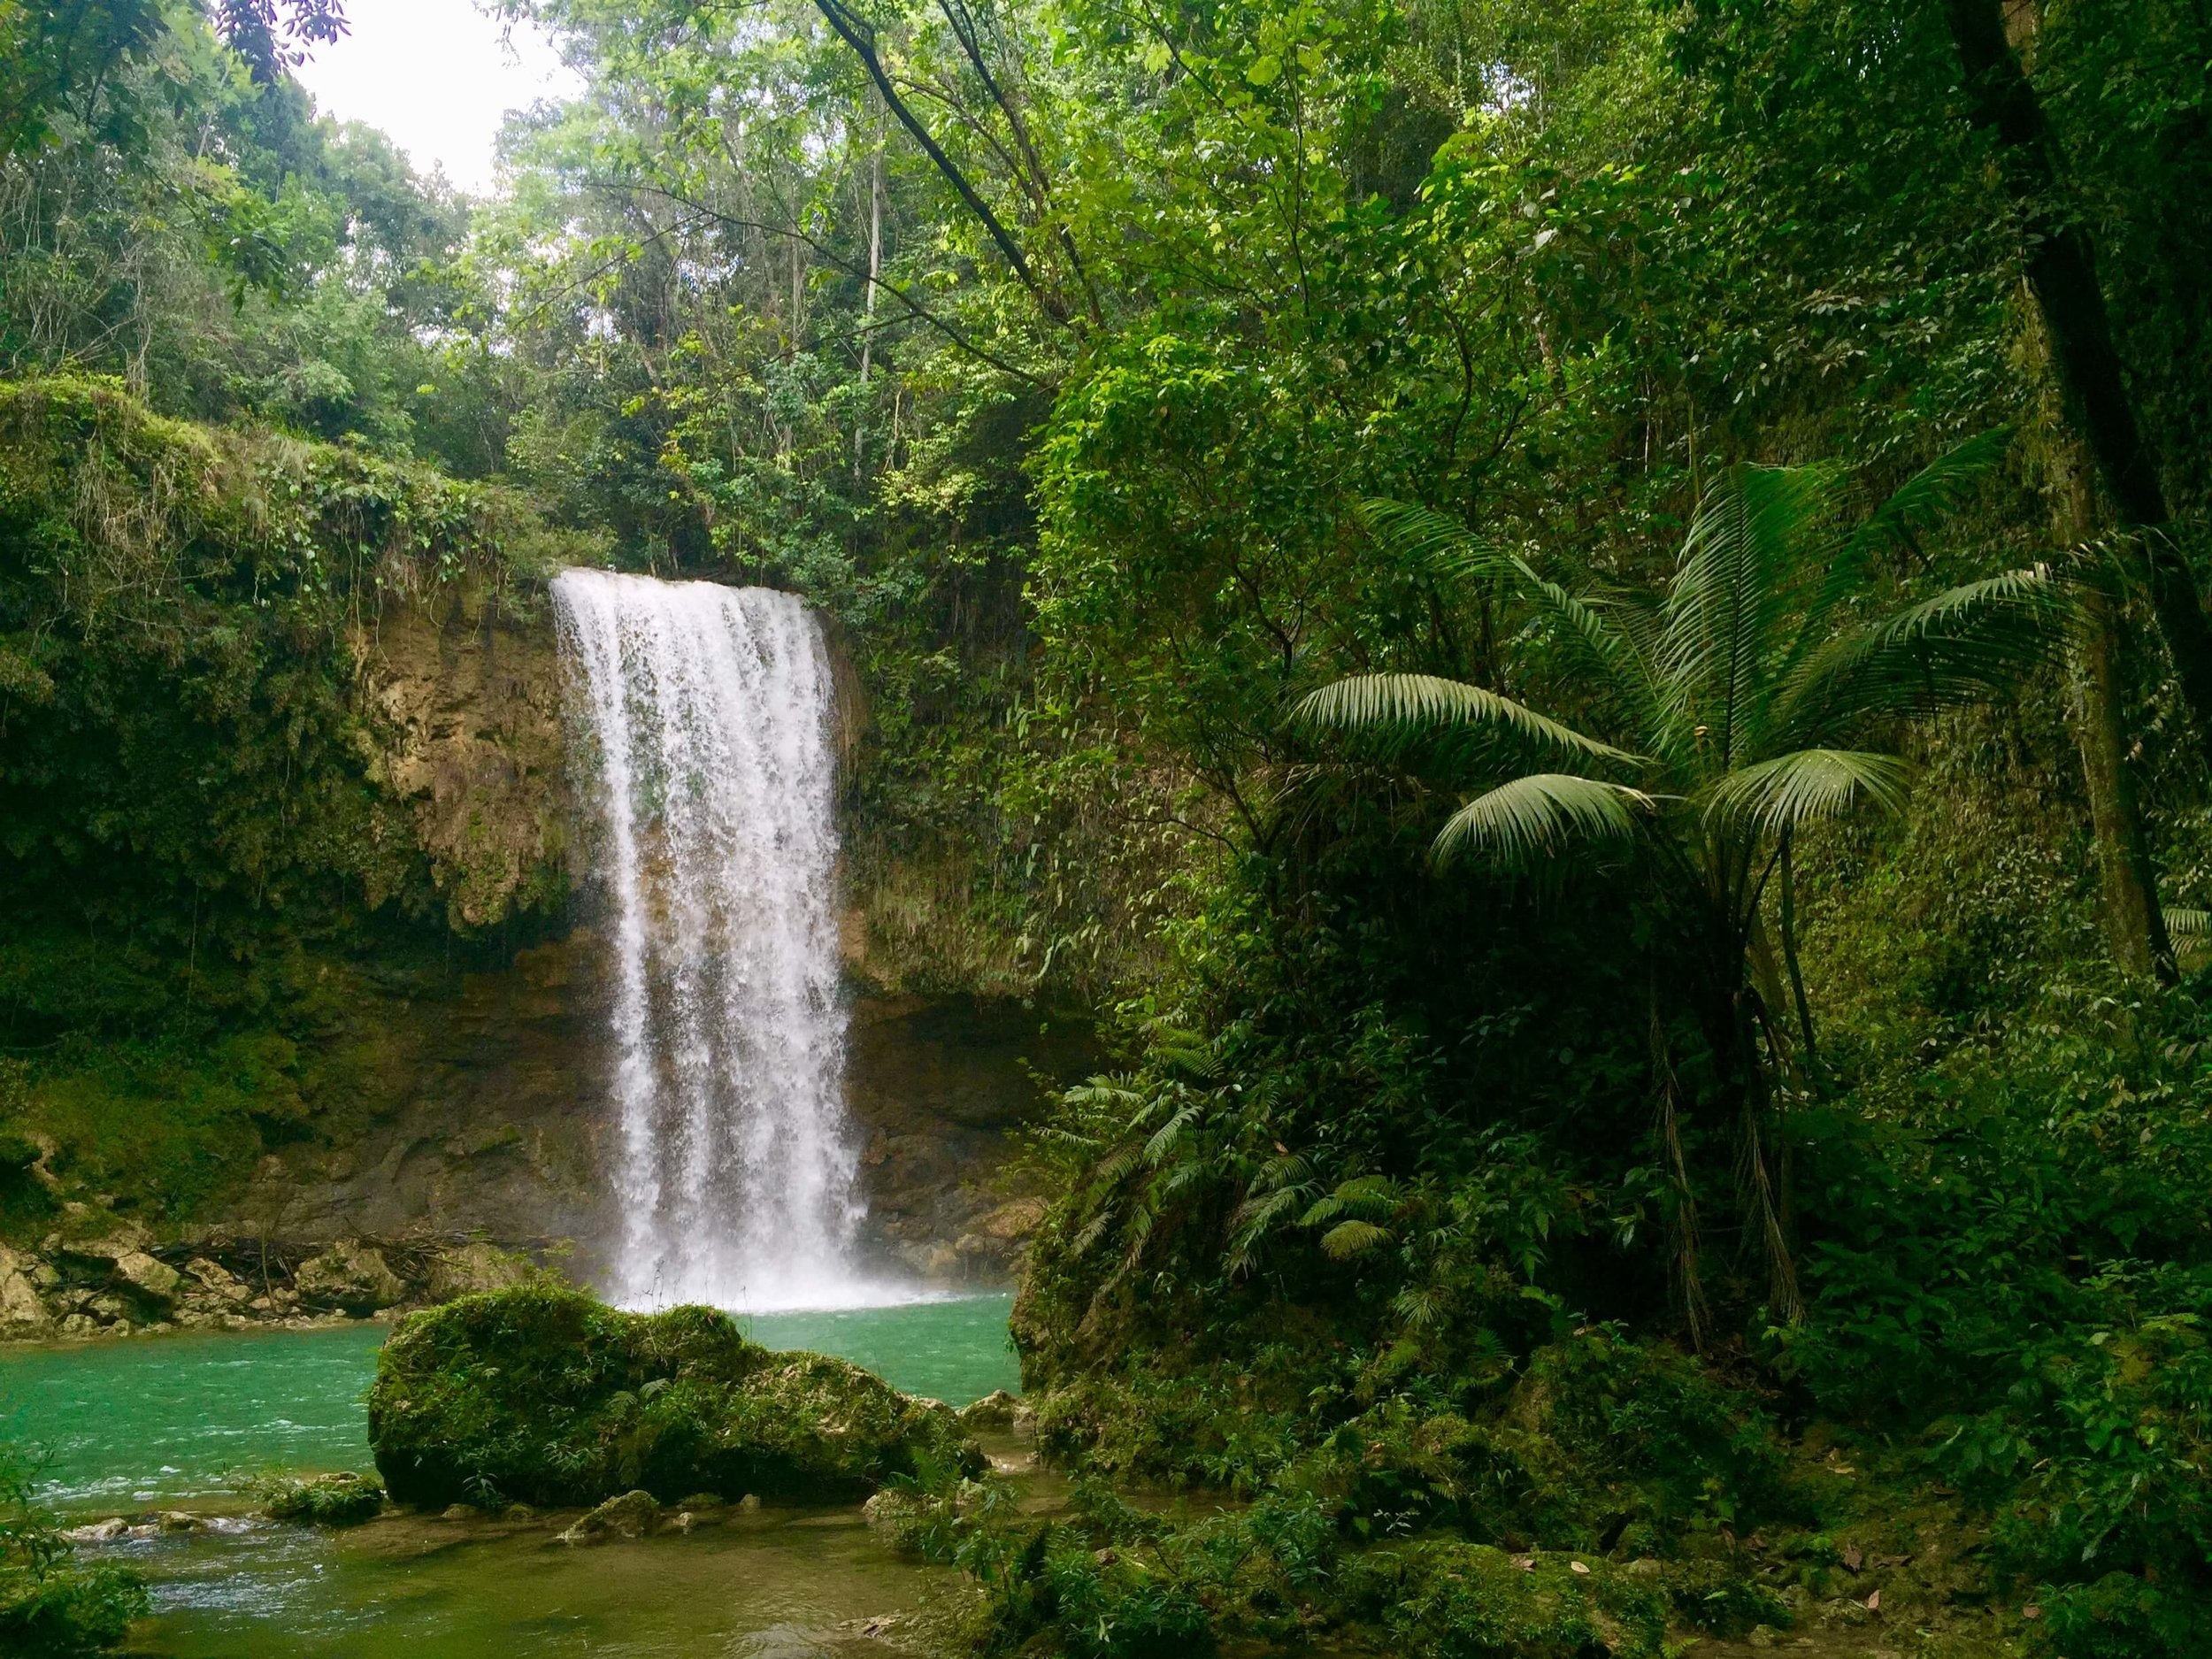 Salto de Socoa, a picturesque waterfall and pool in the Dominican Republic